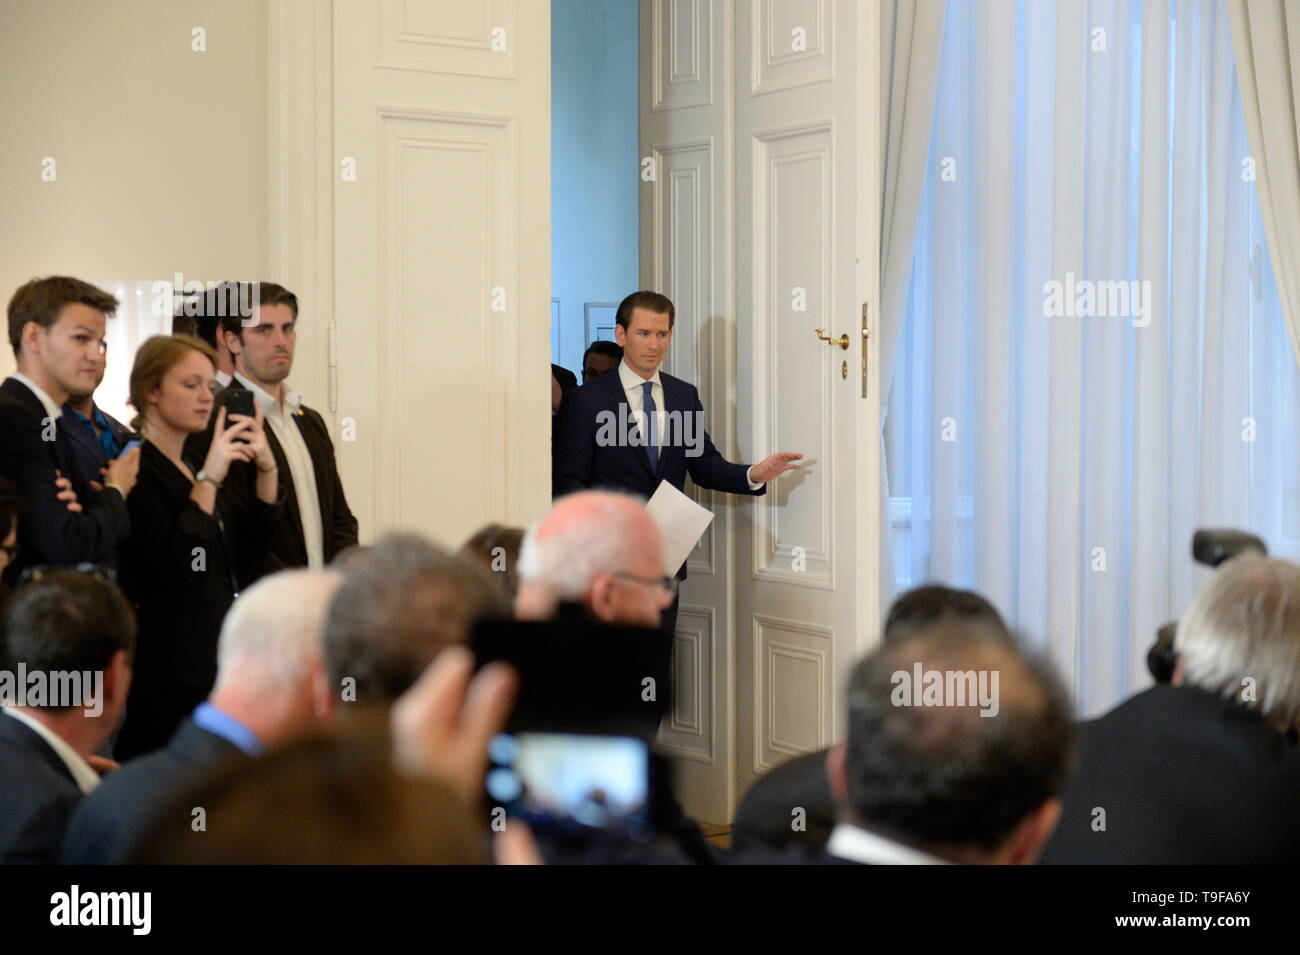 Vienna, Austria. 18th May 2019. Austrian Chancellor Sebastian Kurz (OEVP) makes a statement on the current allegations against Vice-Chancellor Heinz Christian Strache (FPOE). In a stressful video(Ibiza Video), Vice-Chancellor and FPÖ leader Heinz-Christian Strache should have shown willingness to award public contracts in return for campaign donations in 2017. The Austrian Chancellor Sebastian Kurz has called today Saturday 18th May 2019 new elections. Franz Perc / Alamy Live News - Stock Image